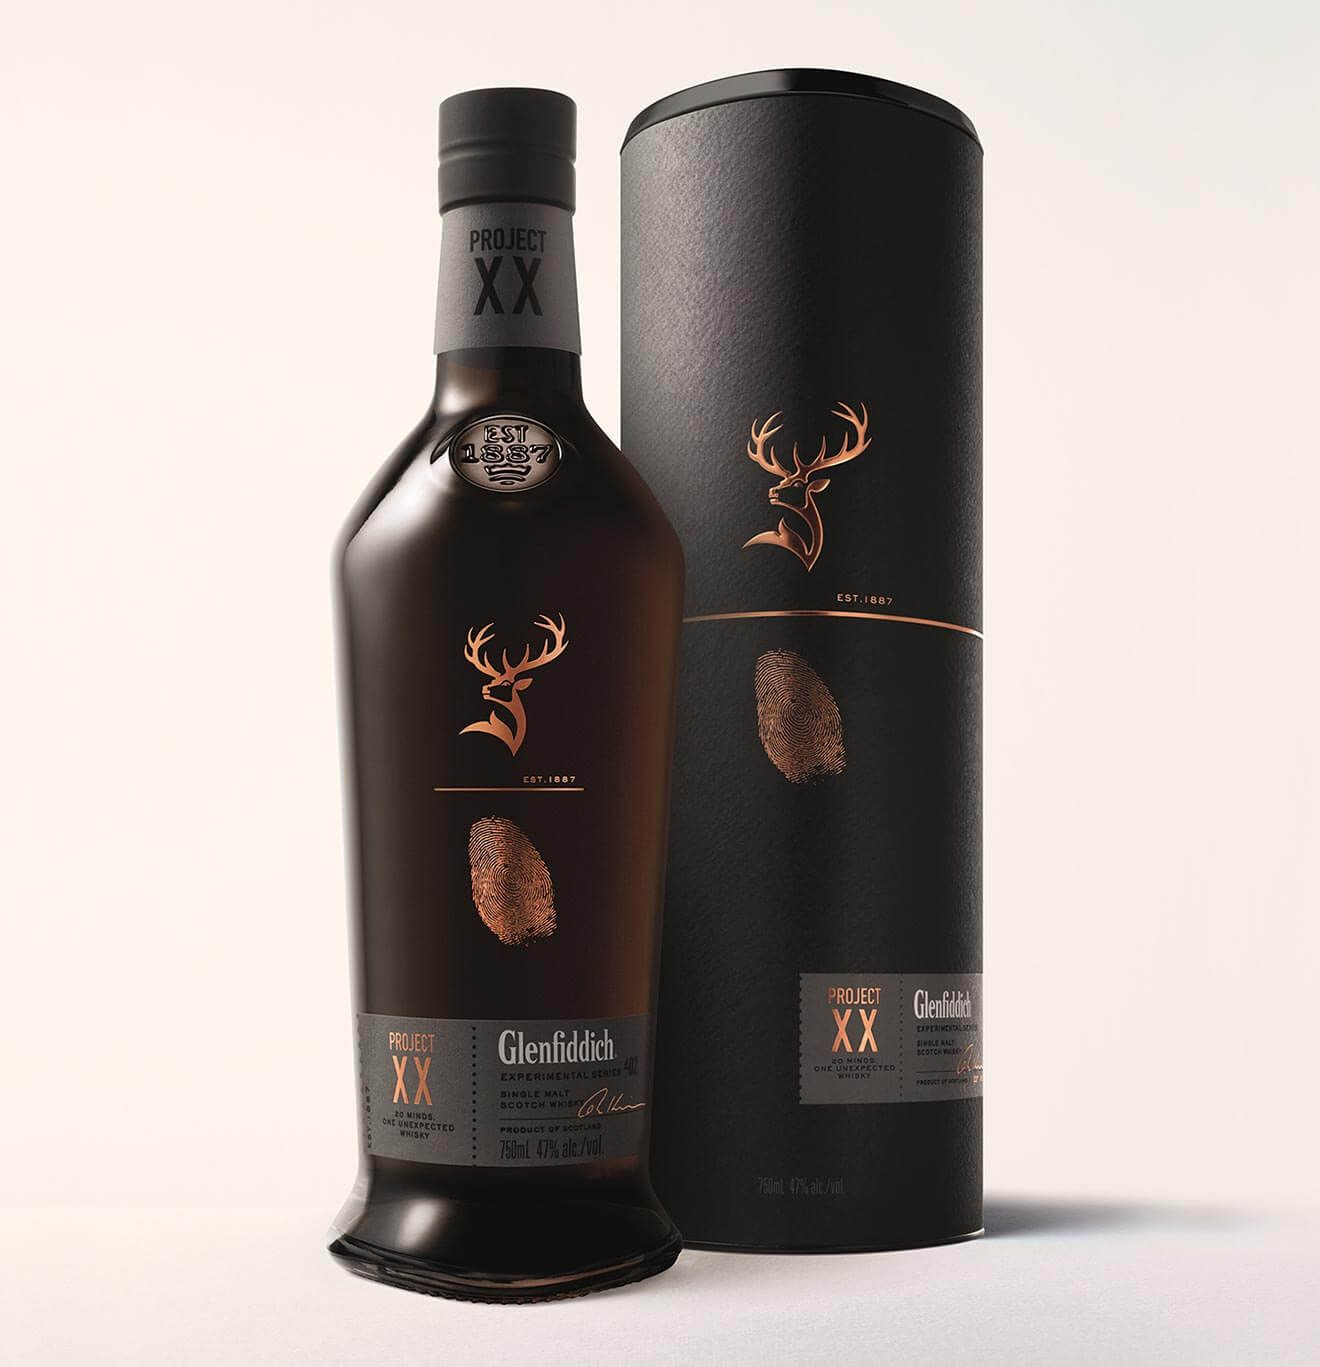 Glenfiddich Project XX, bottle and package